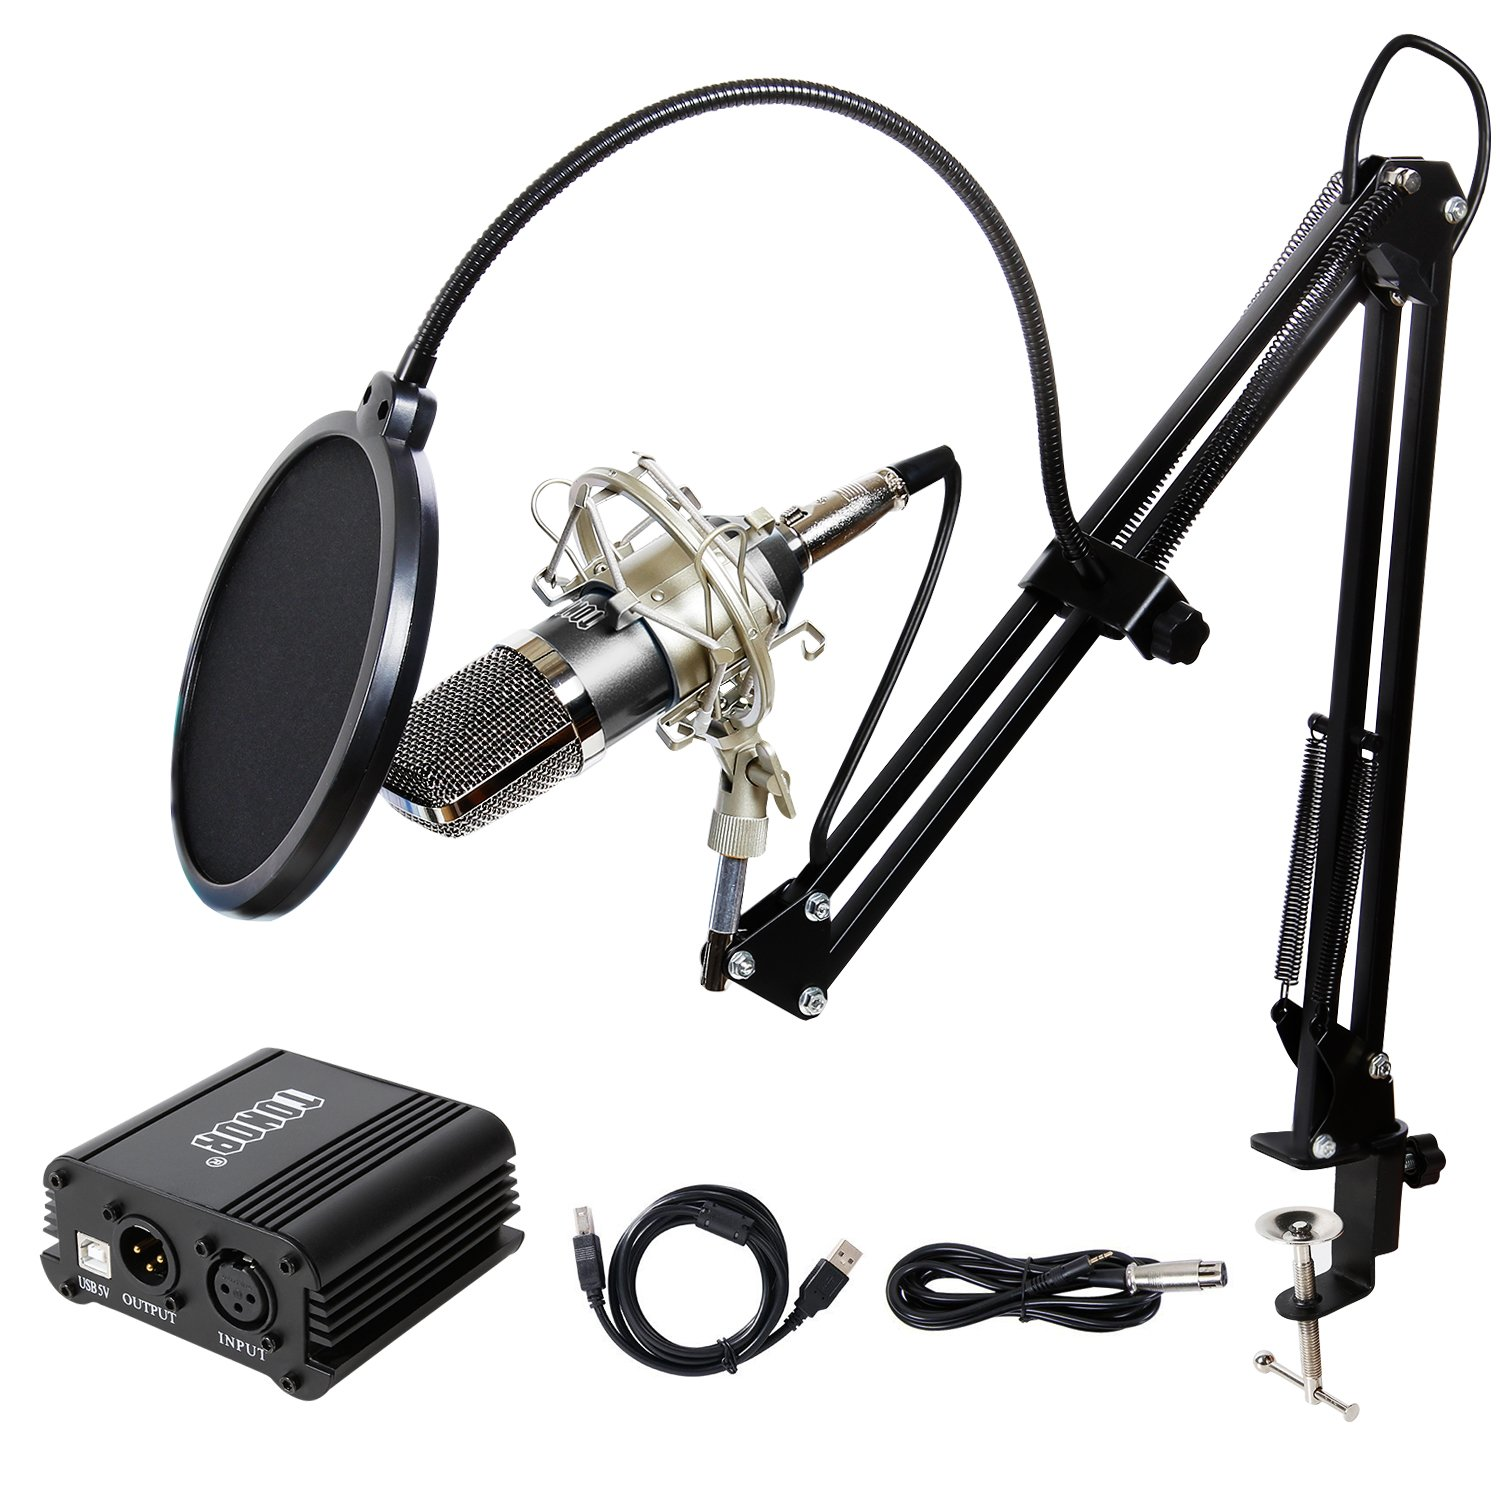 TONOR Pro Condenser Microphone XLR to 3.5mm Podcasting Studio Recording Condenser Microphone Kit Computer Mics with 48V Phantom Power Supply Black by TONOR